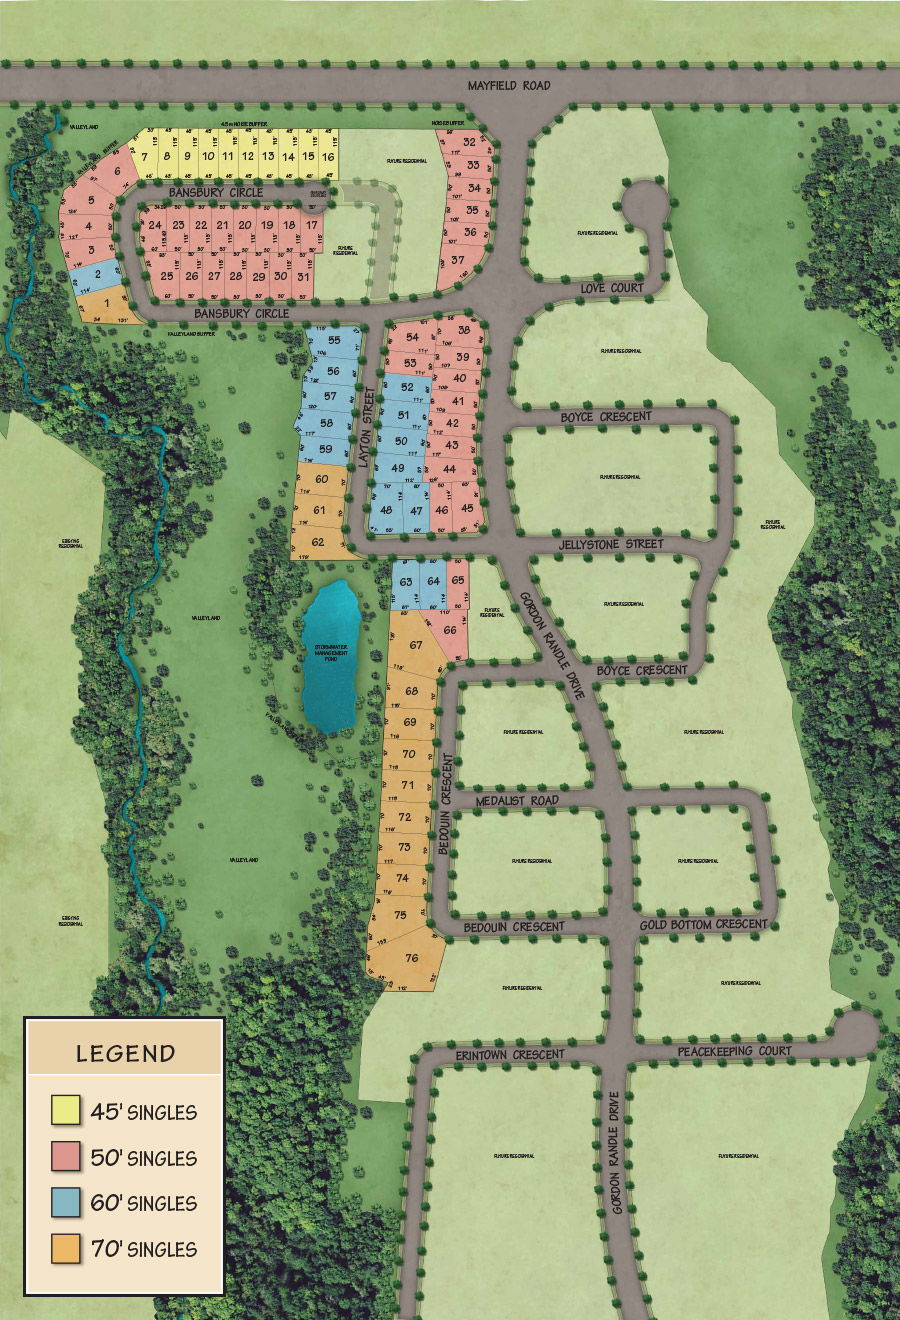 Site plan for Vales of Humber (RB) in Brampton, Ontario